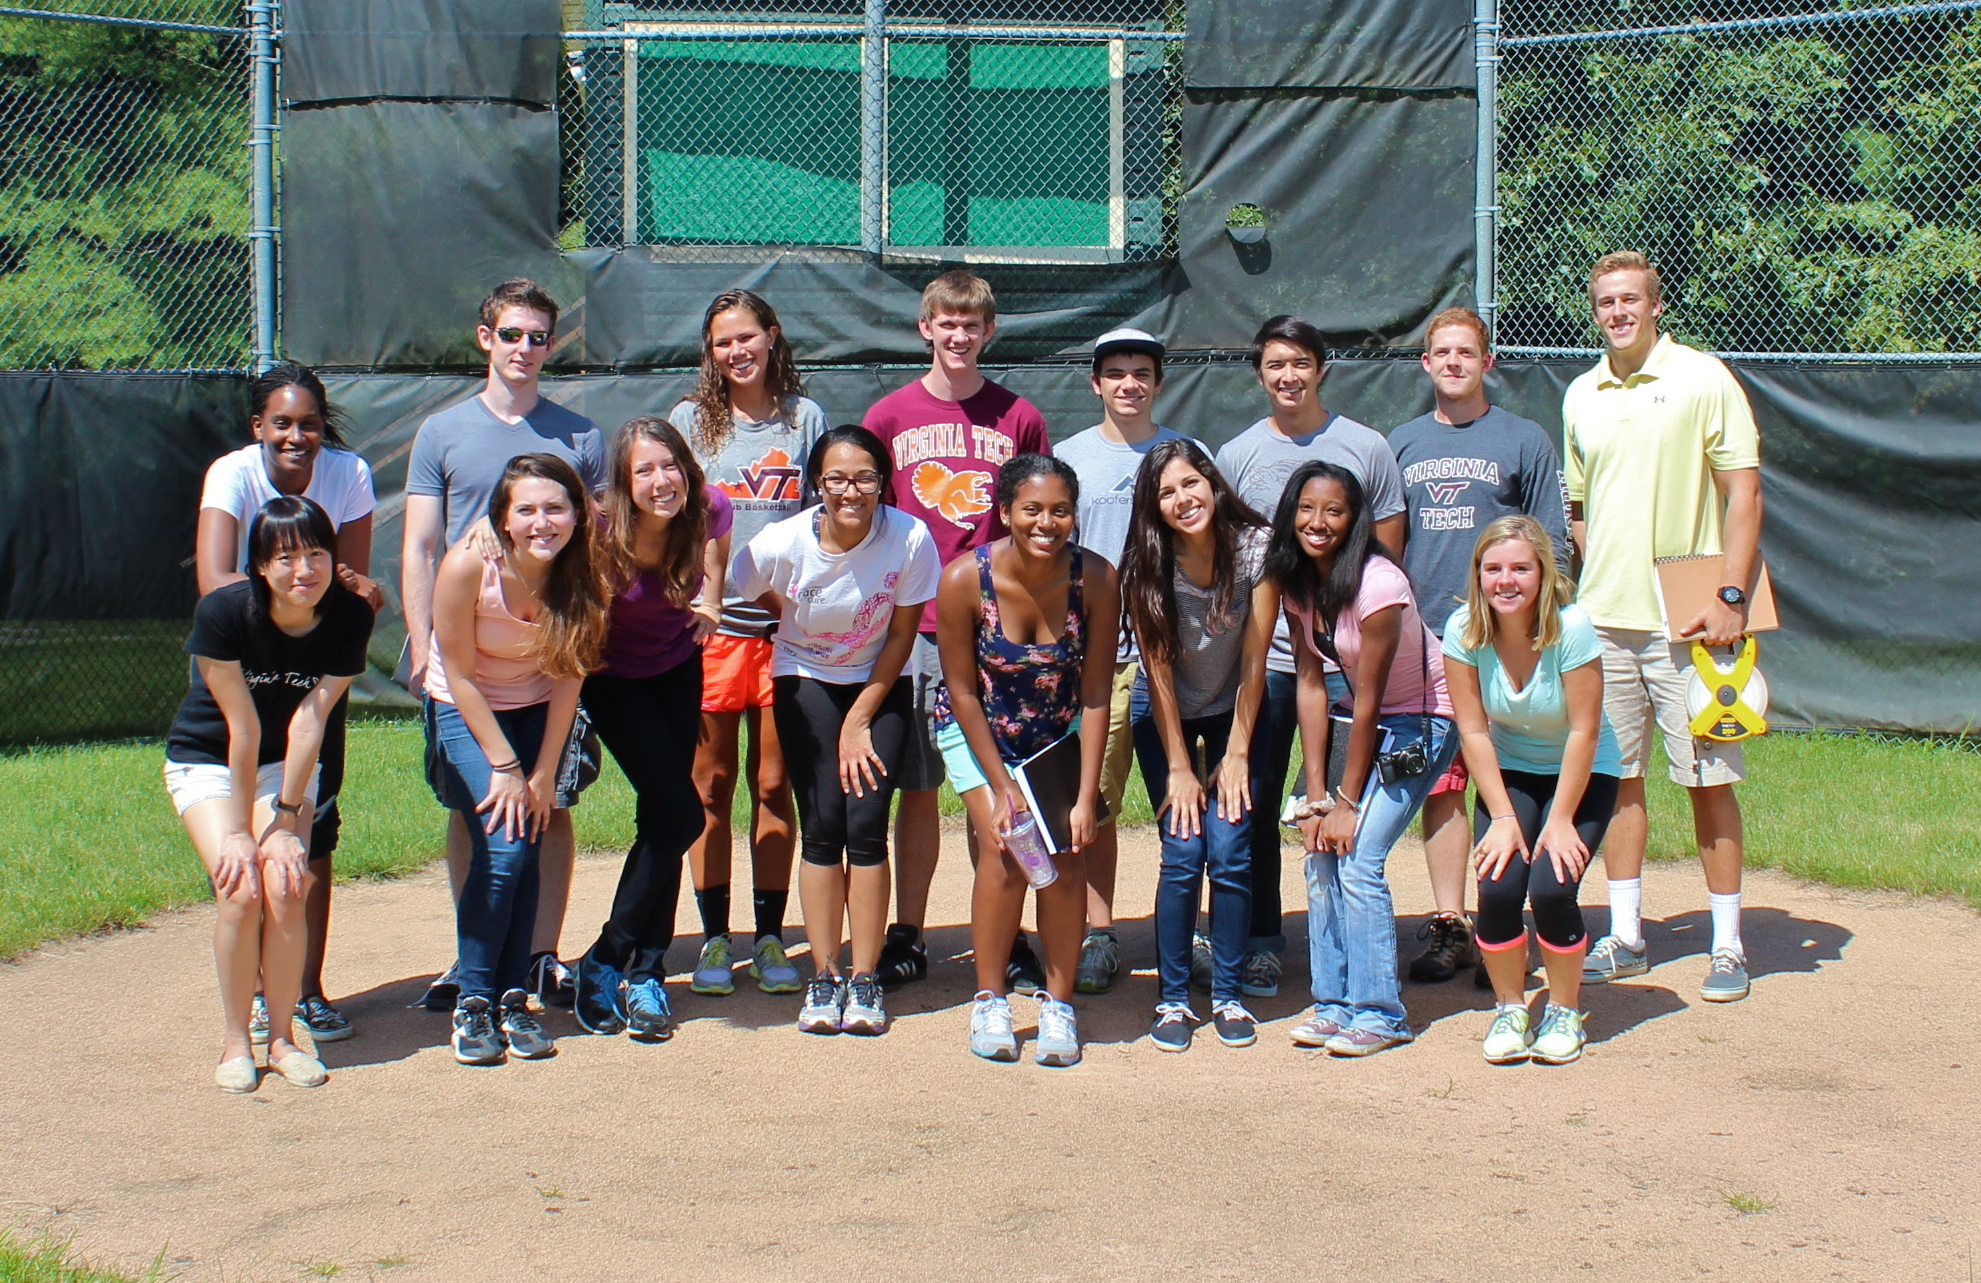 A group of 16 students stand on a baseball field.